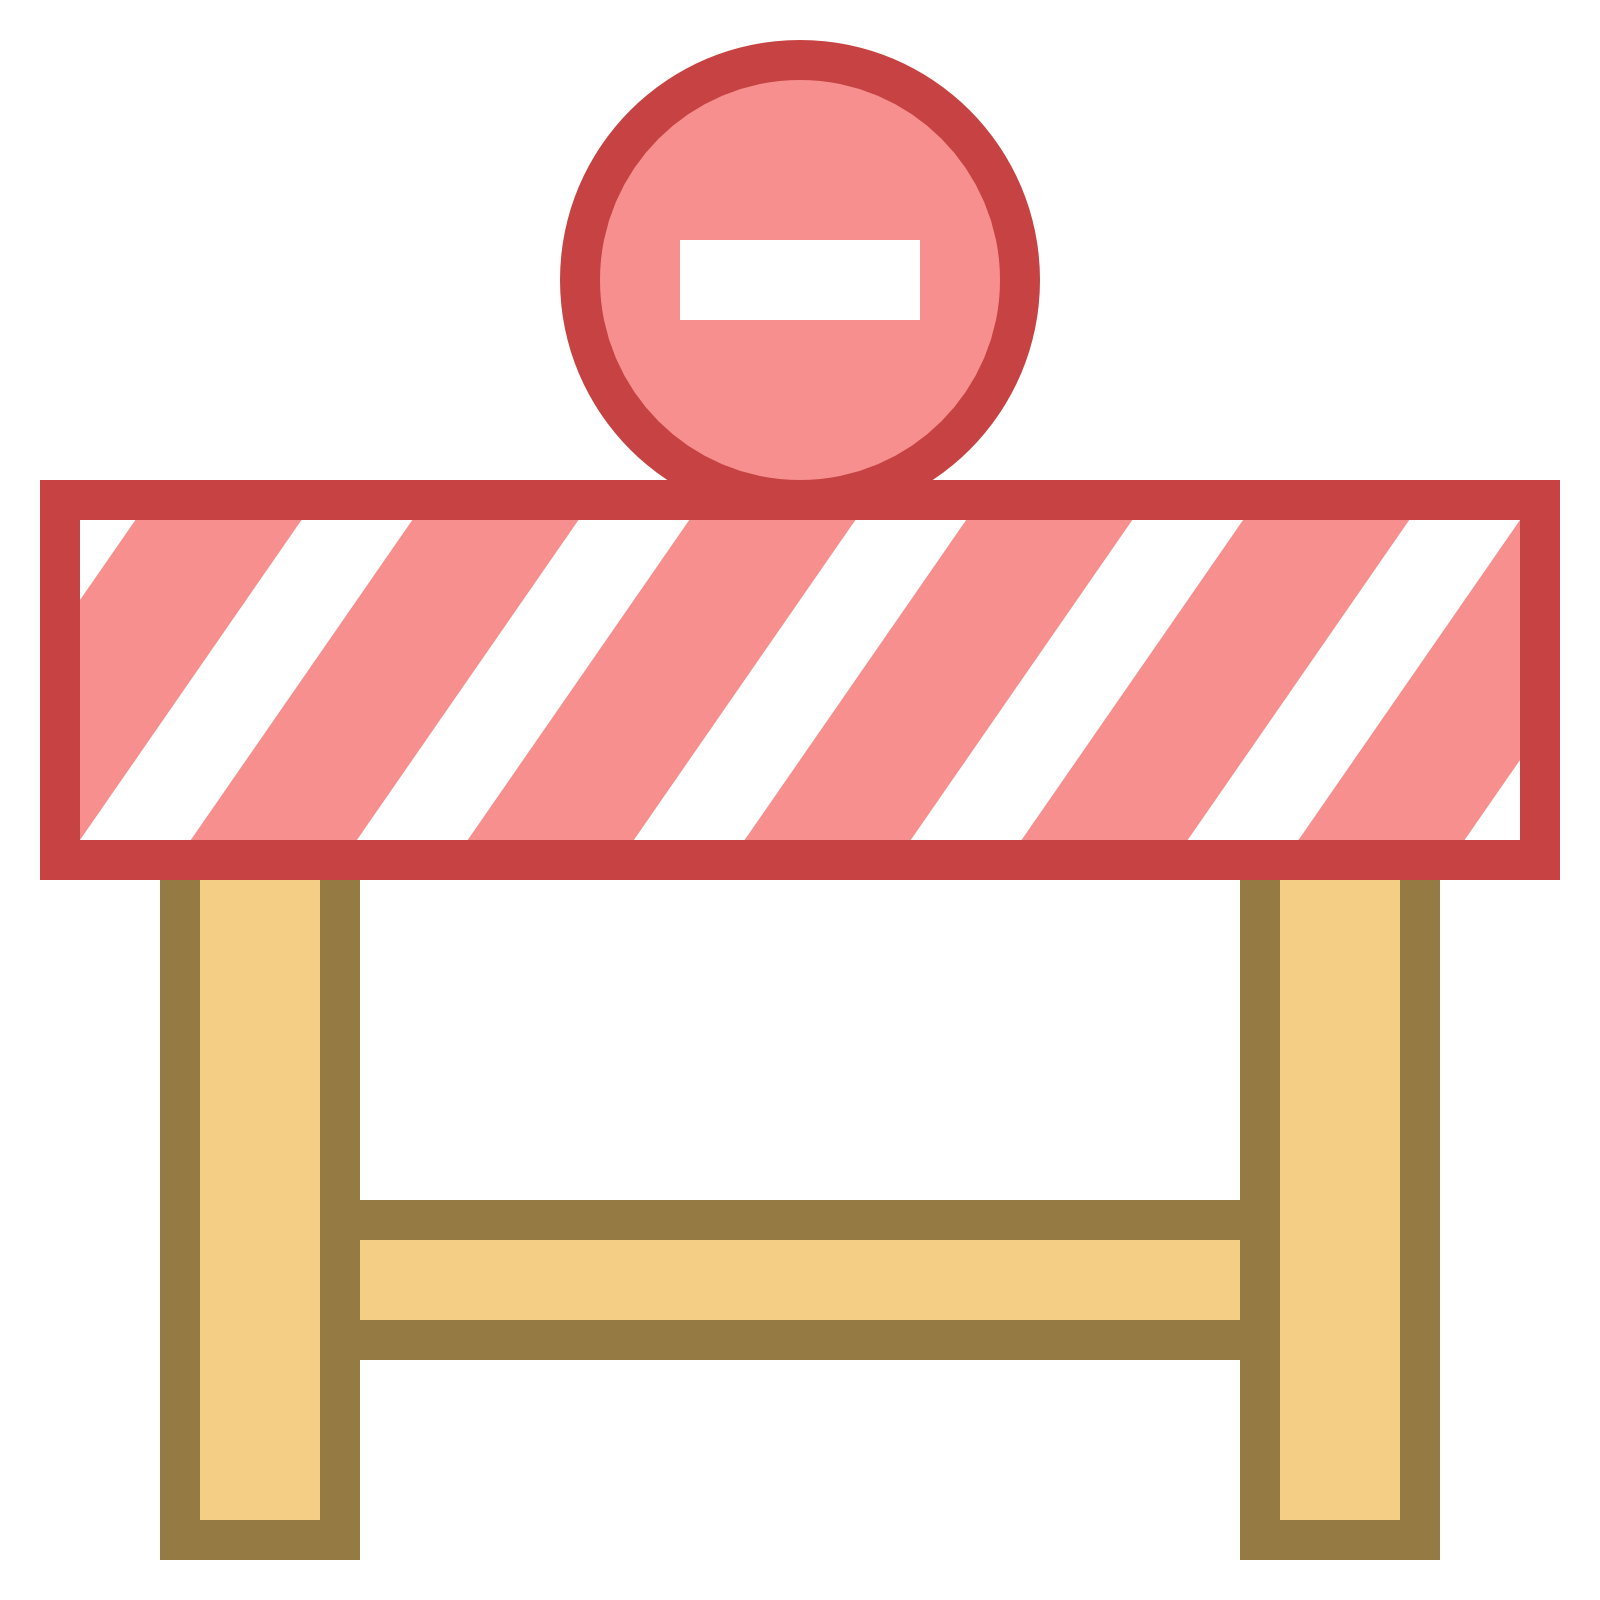 Library comjob interview free. Clipart road icon